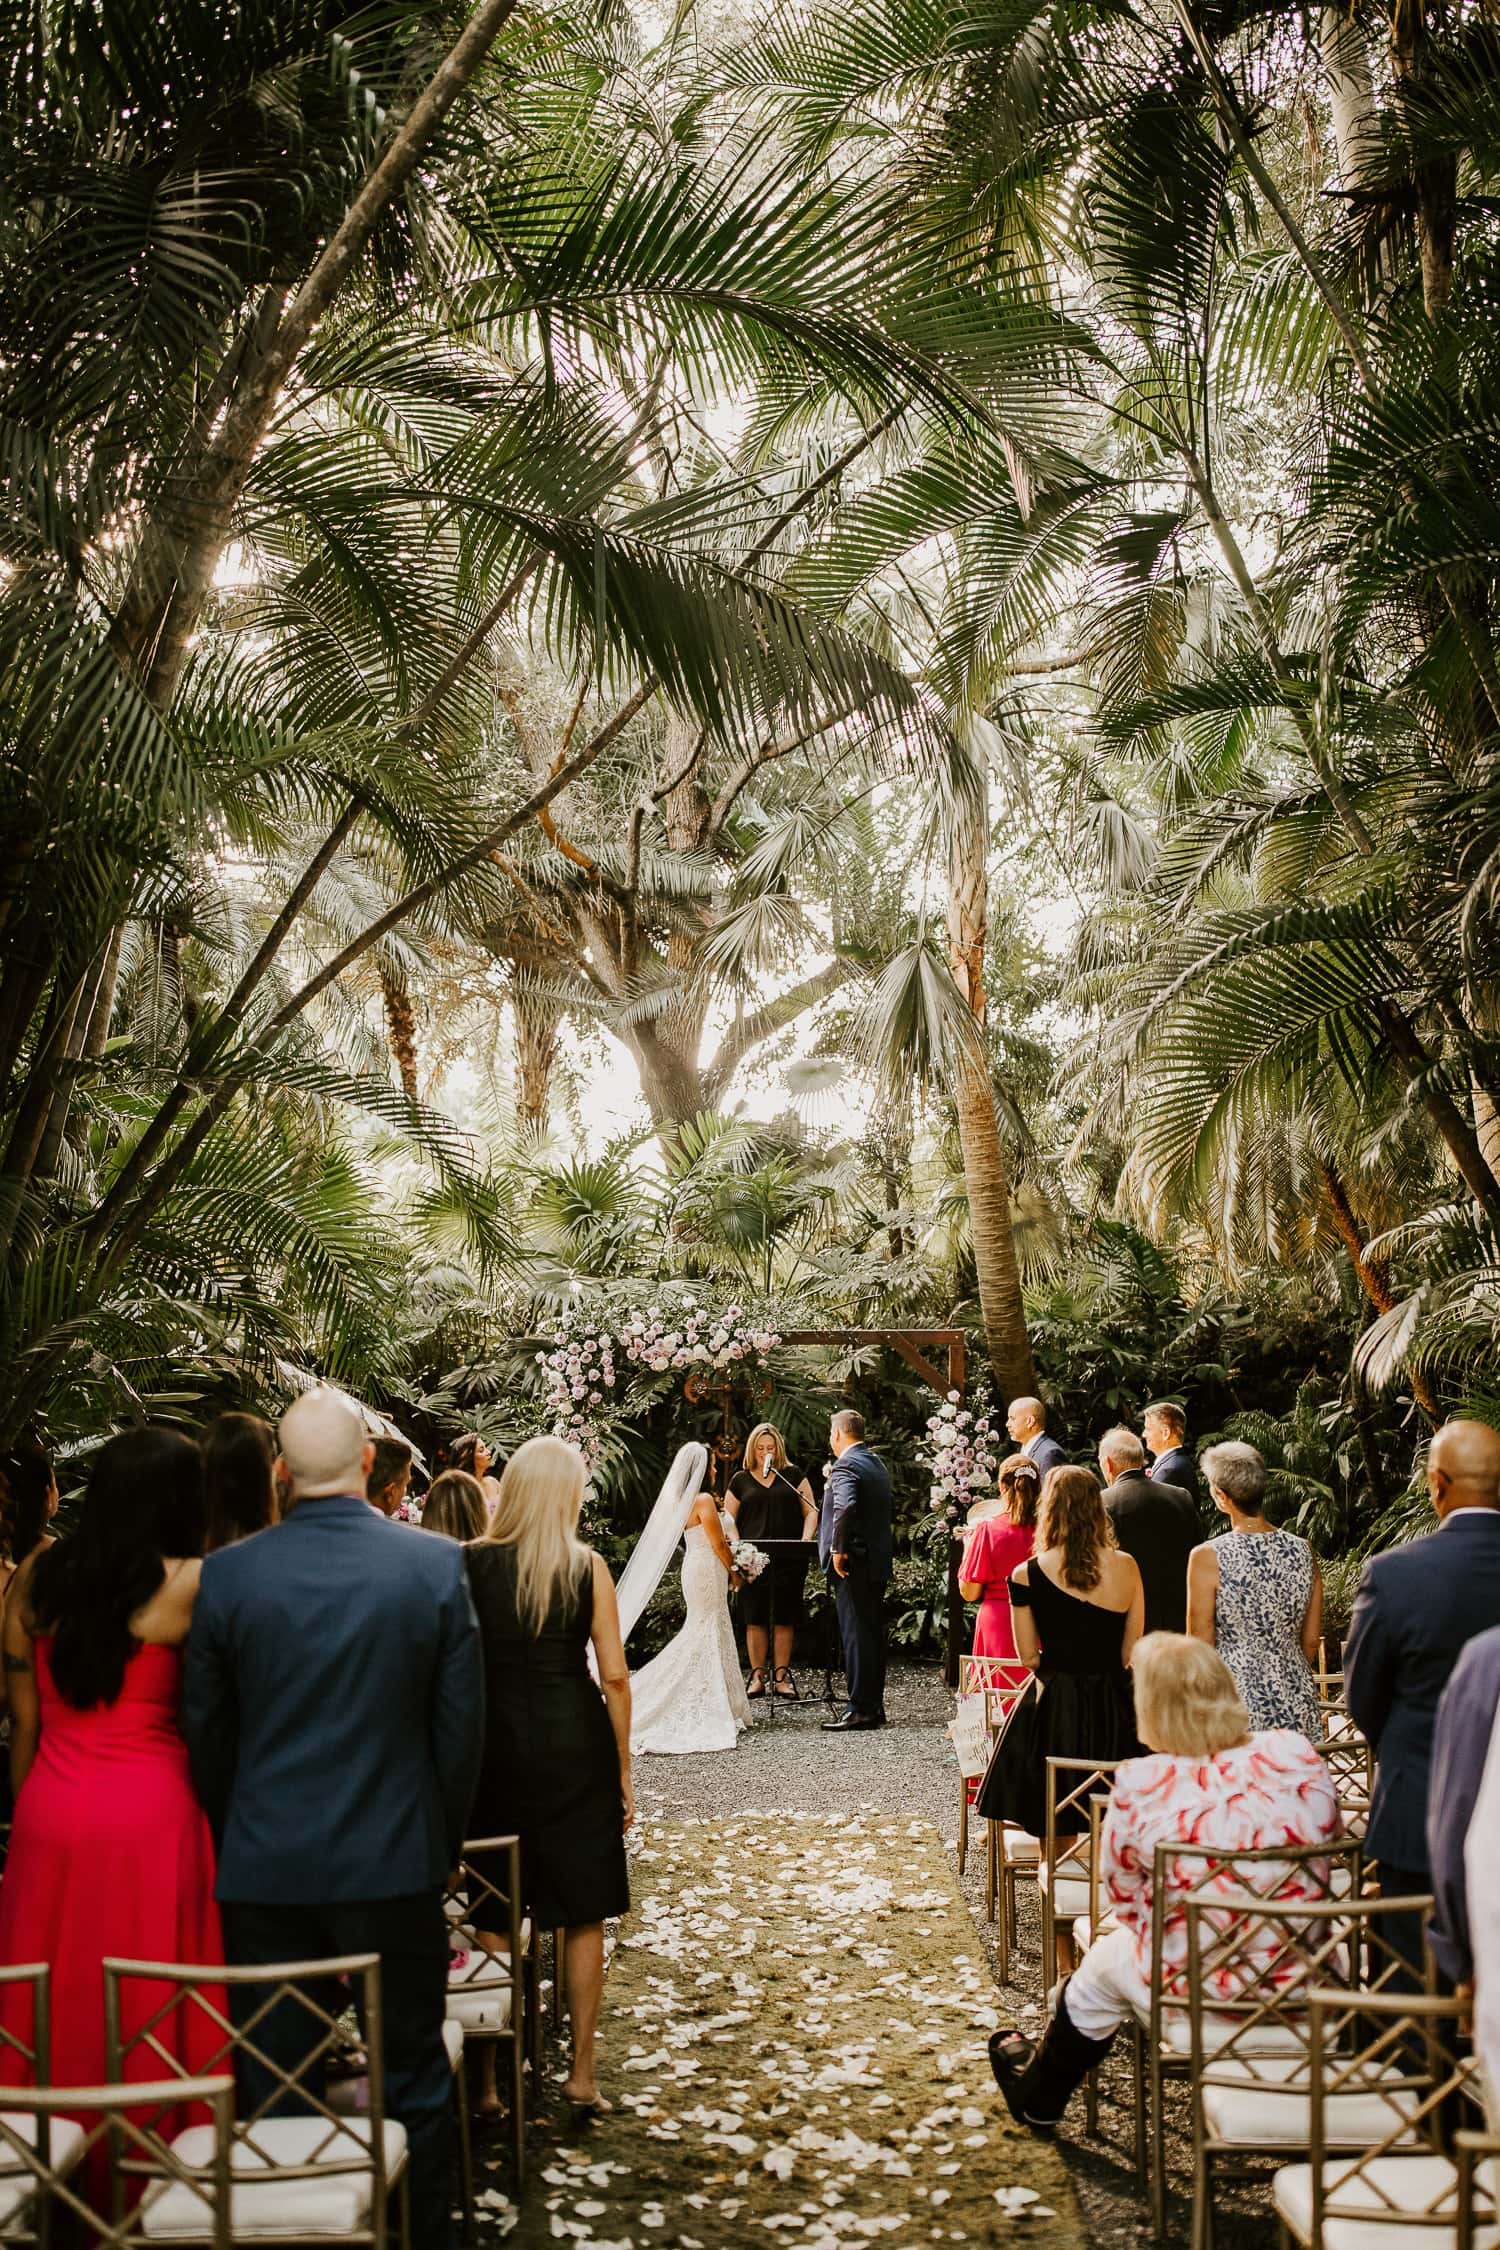 Wedding ceremony under palm trees at the Cooper Estate in South Florida.